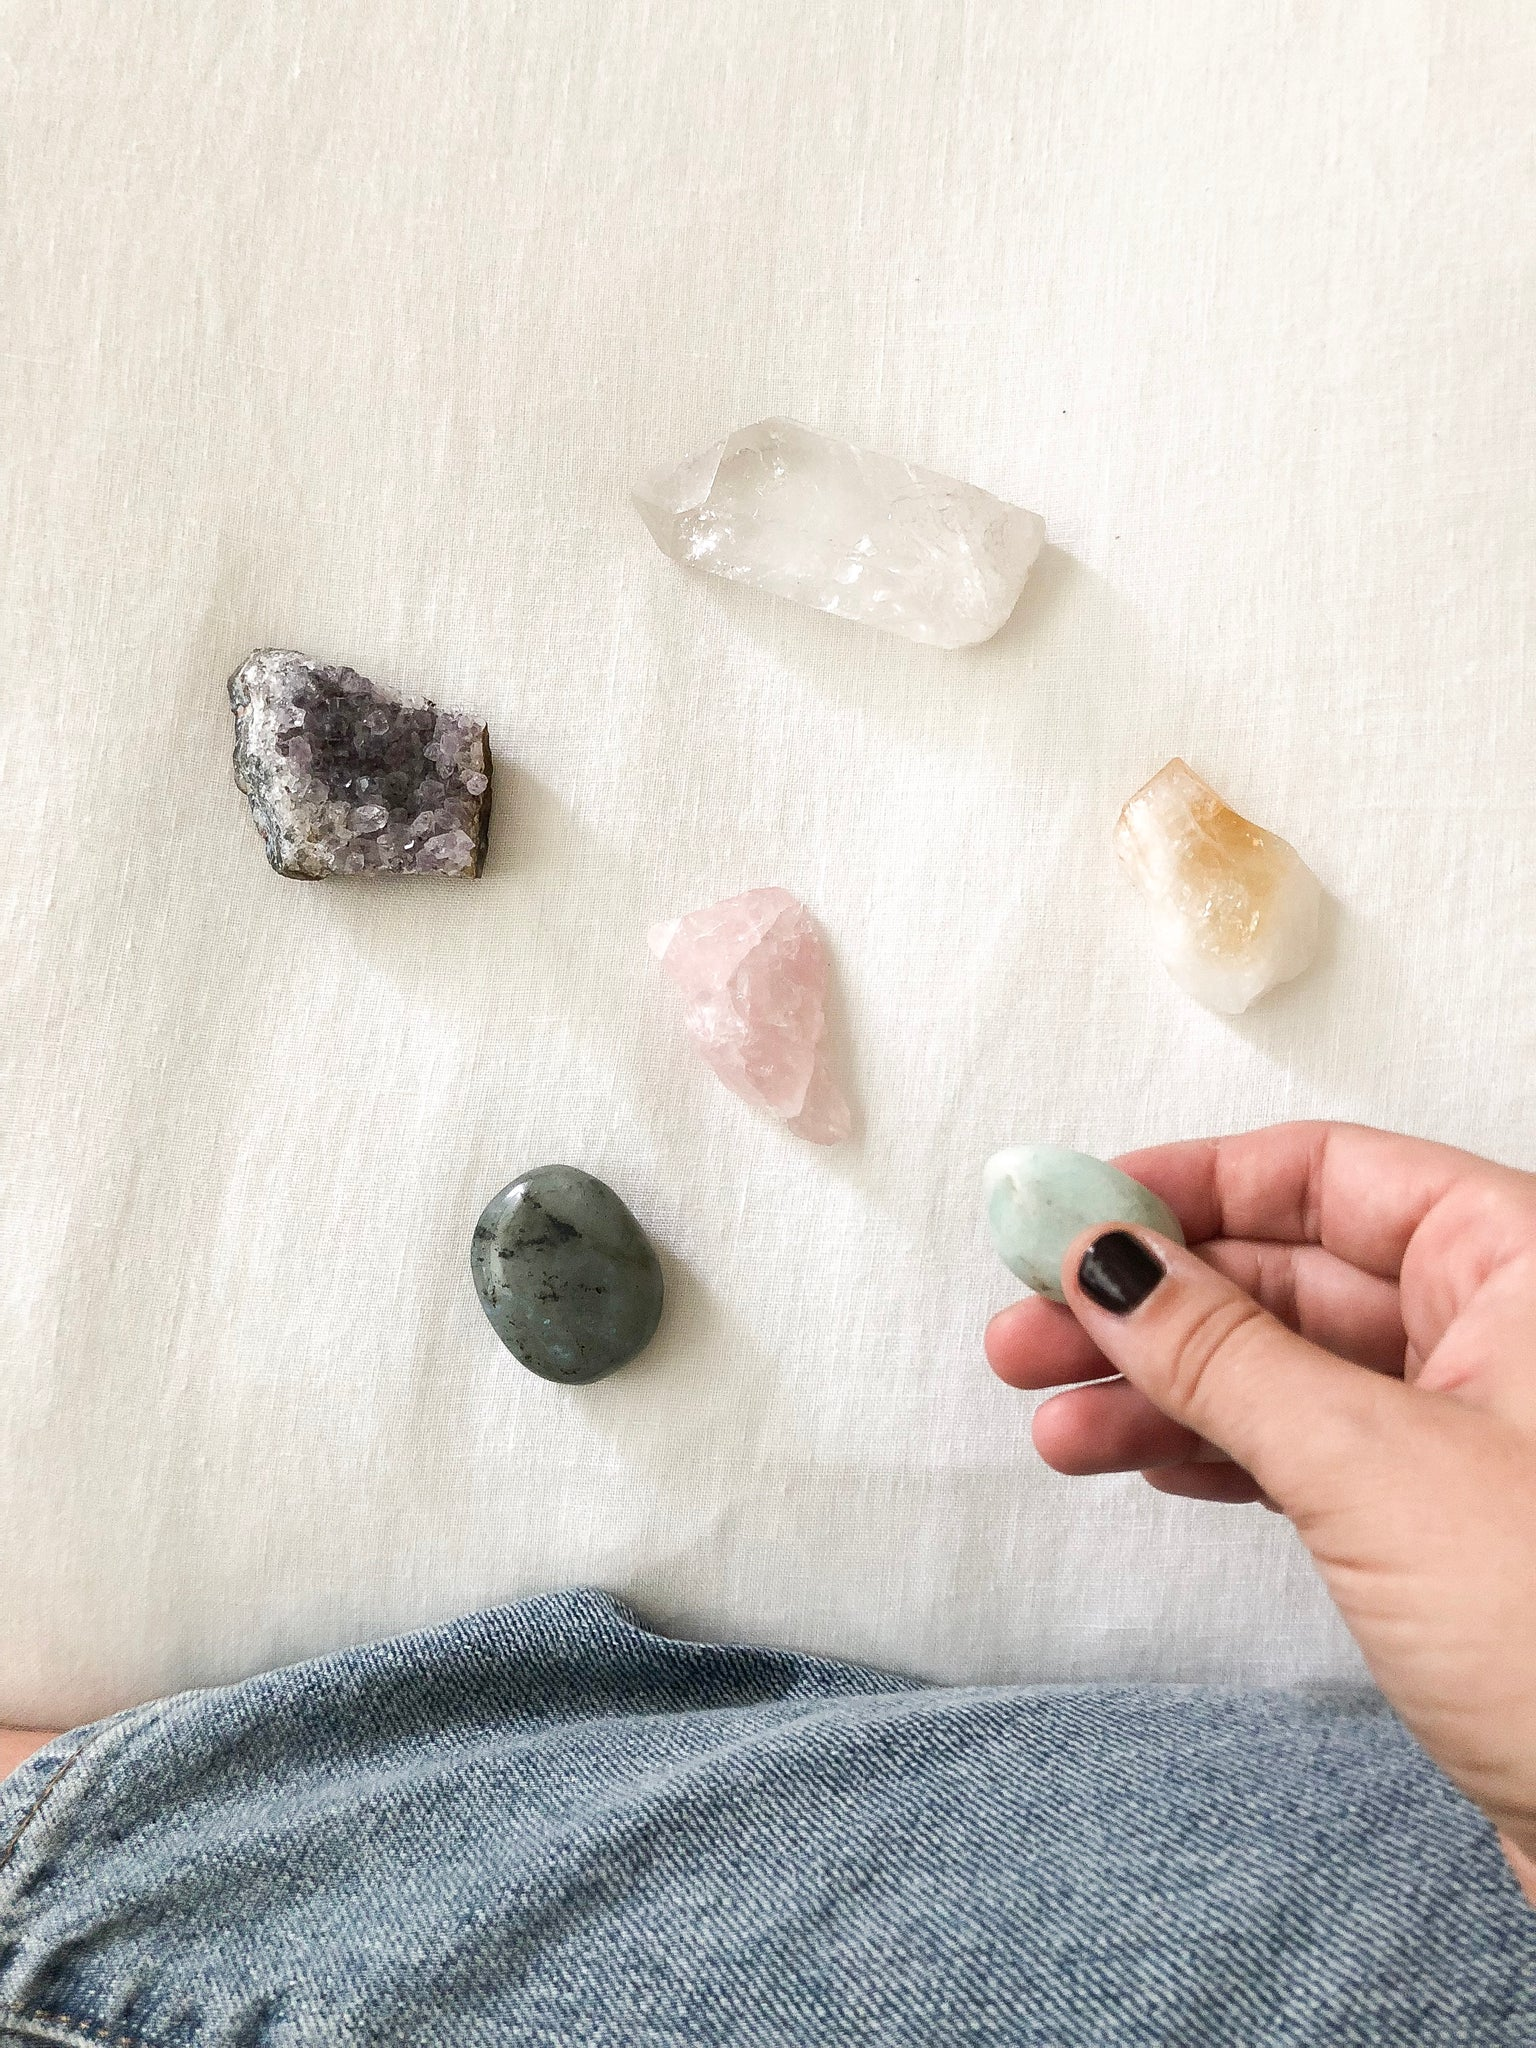 Healing Crystals | Crystals and Stones